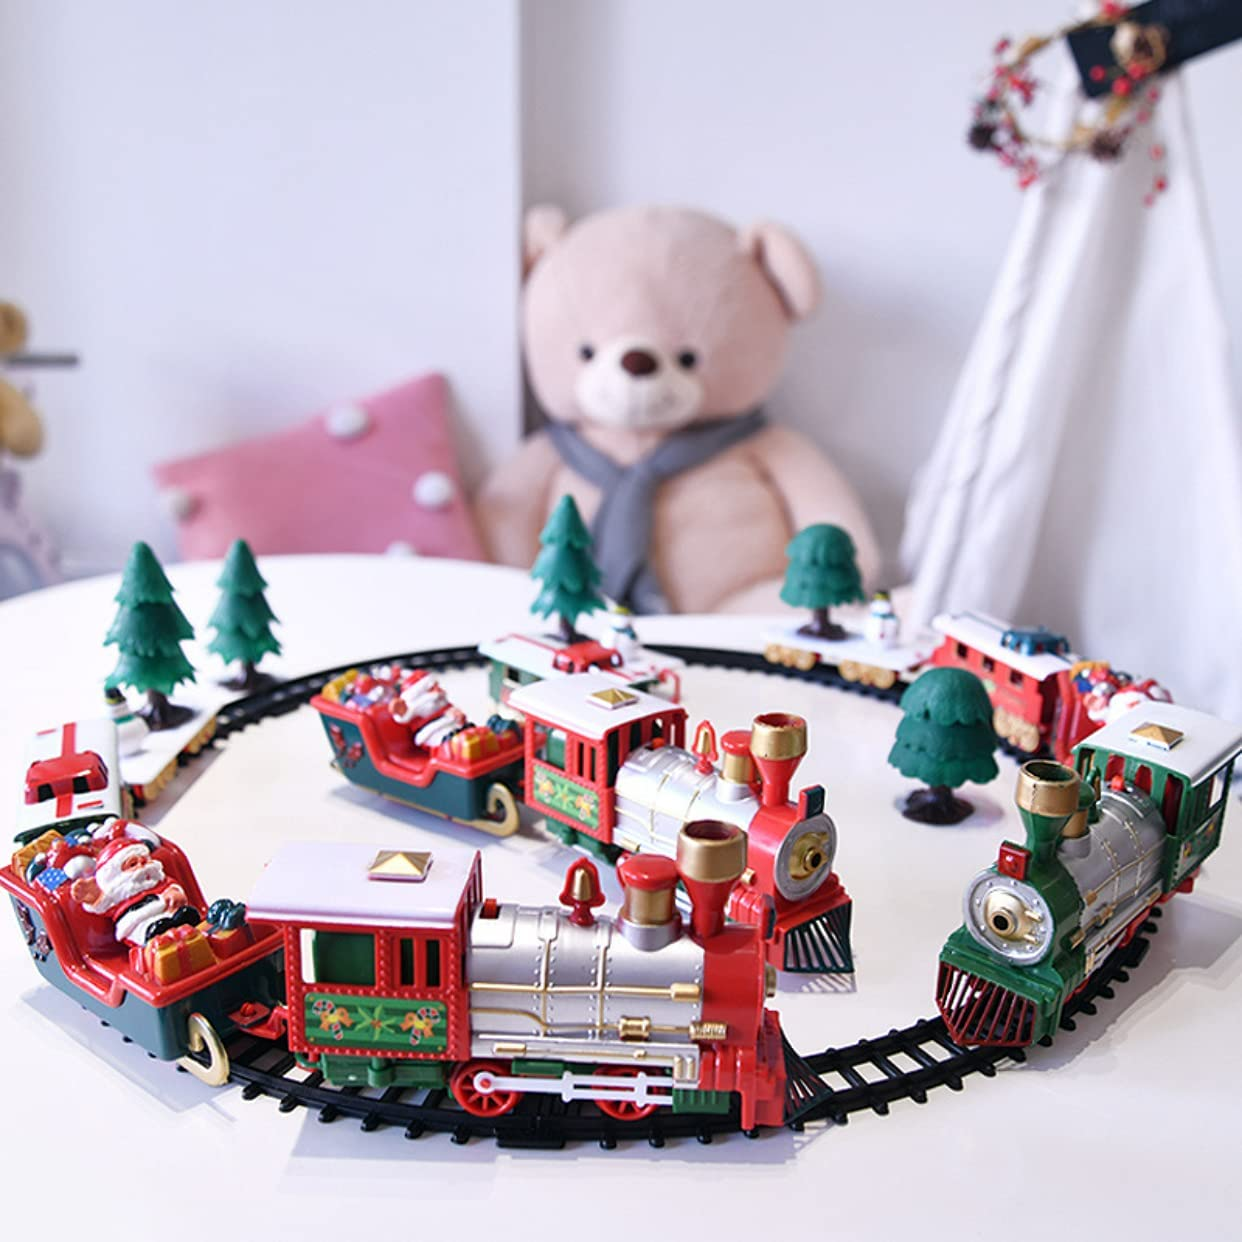 Christmas Train Sets with and Popular shop is the Shipping included lowest price challenge Toy Lights Sounds